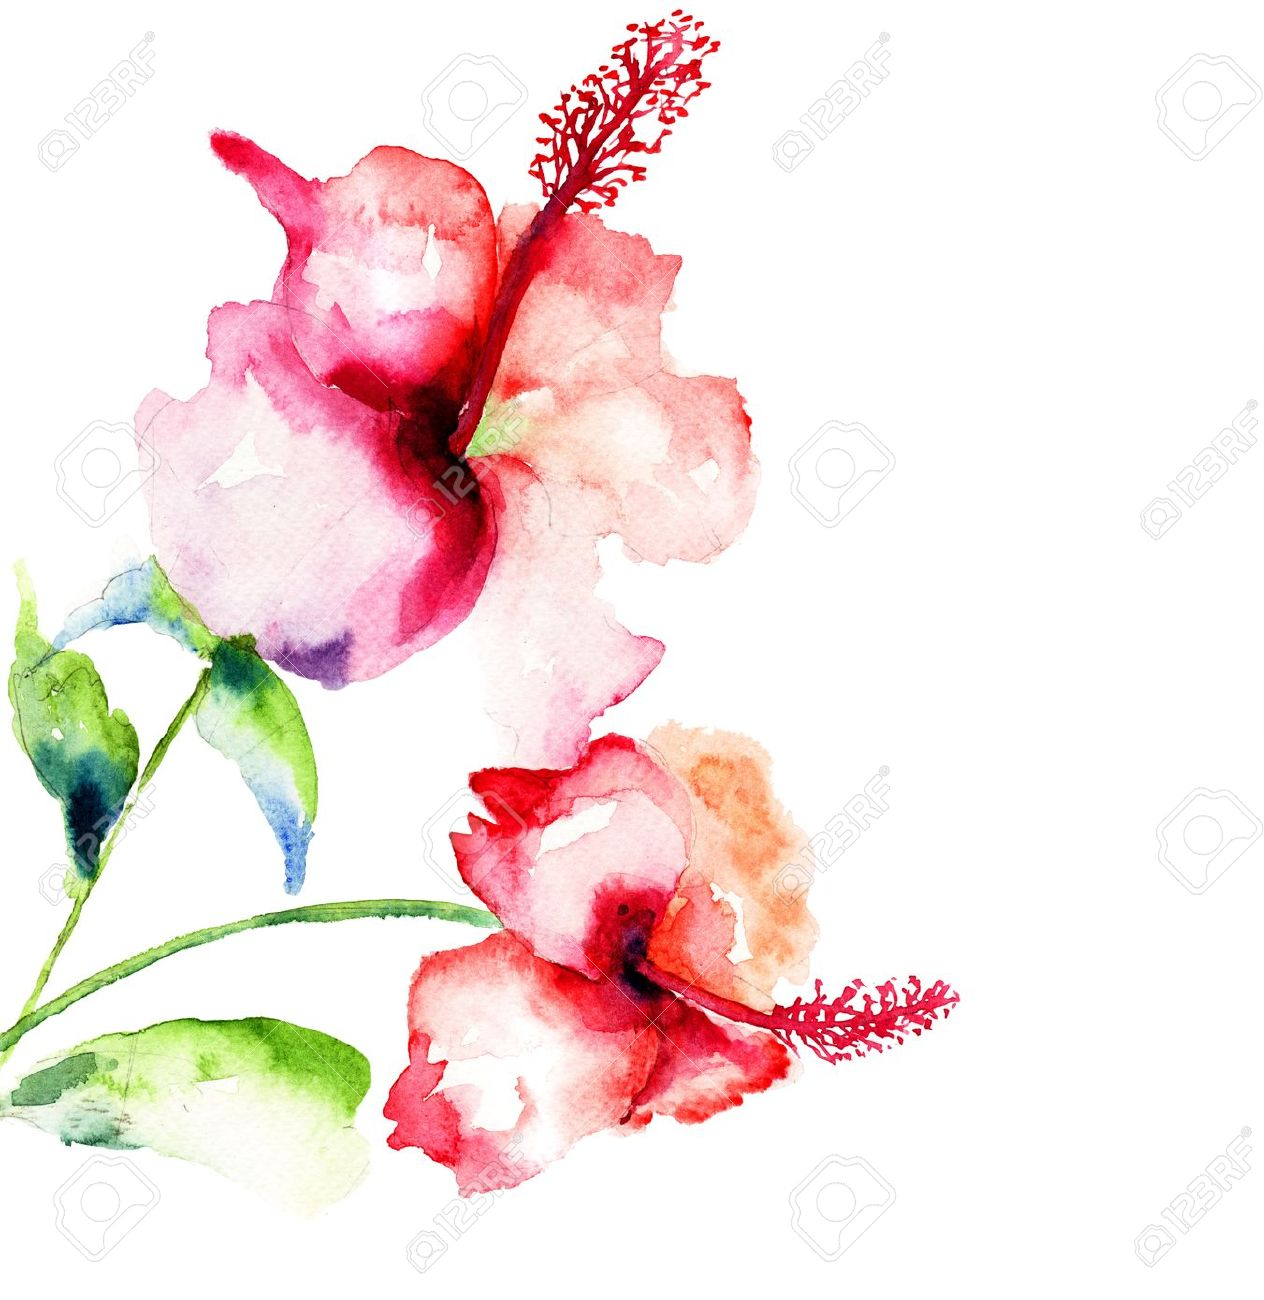 Red hibiscus flowerswatercolor painting stock photo picture and red hibiscus flowerswatercolor painting stock photo 21185779 izmirmasajfo